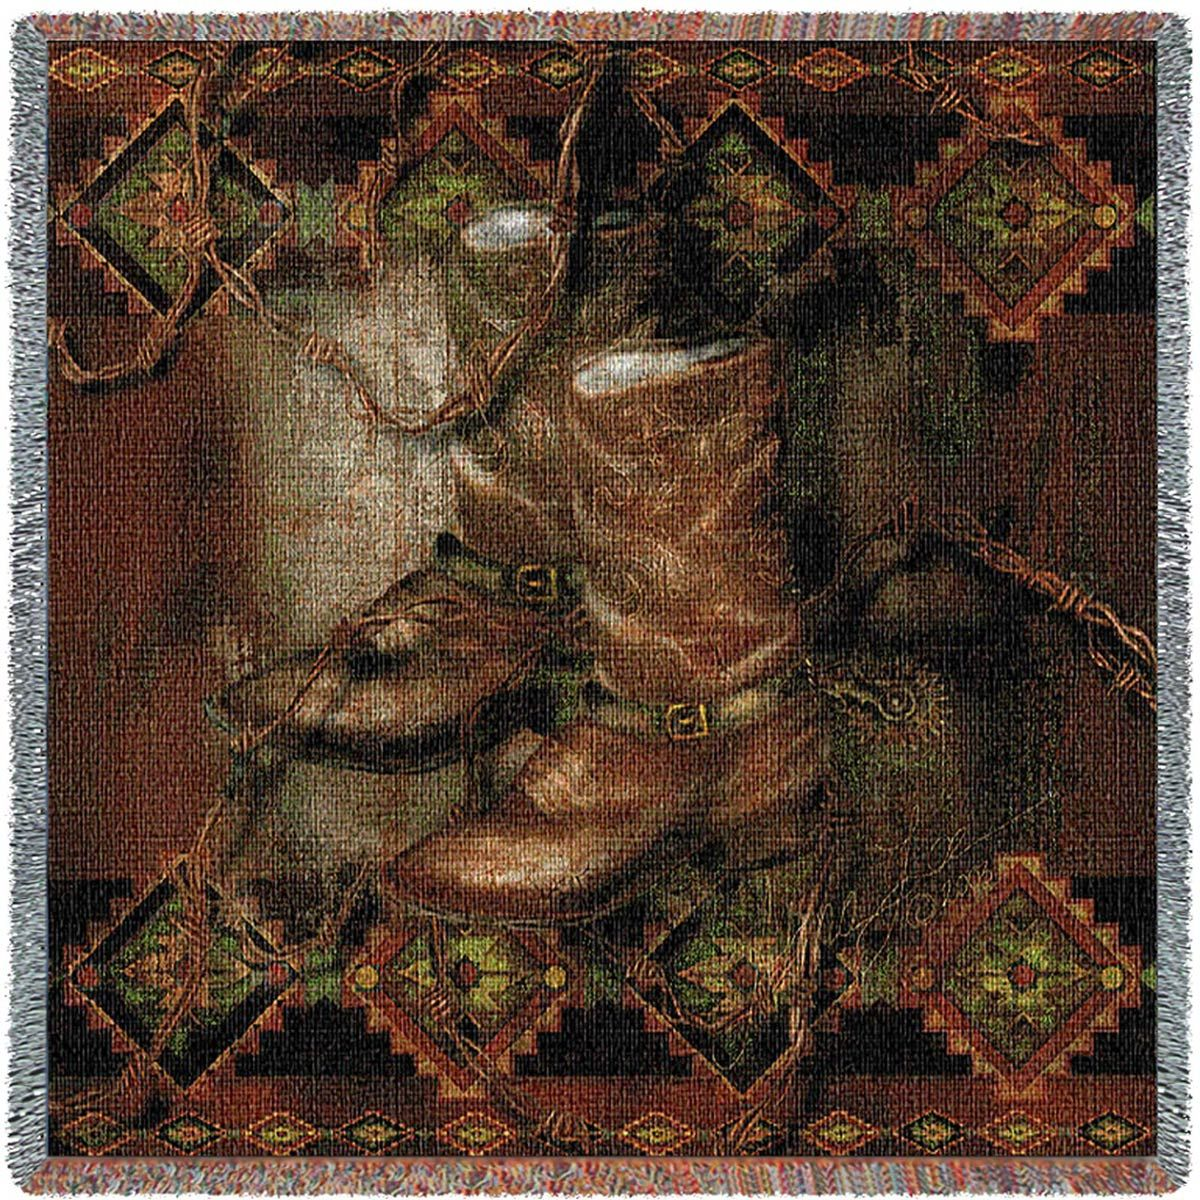 Western Boot Small Blanket